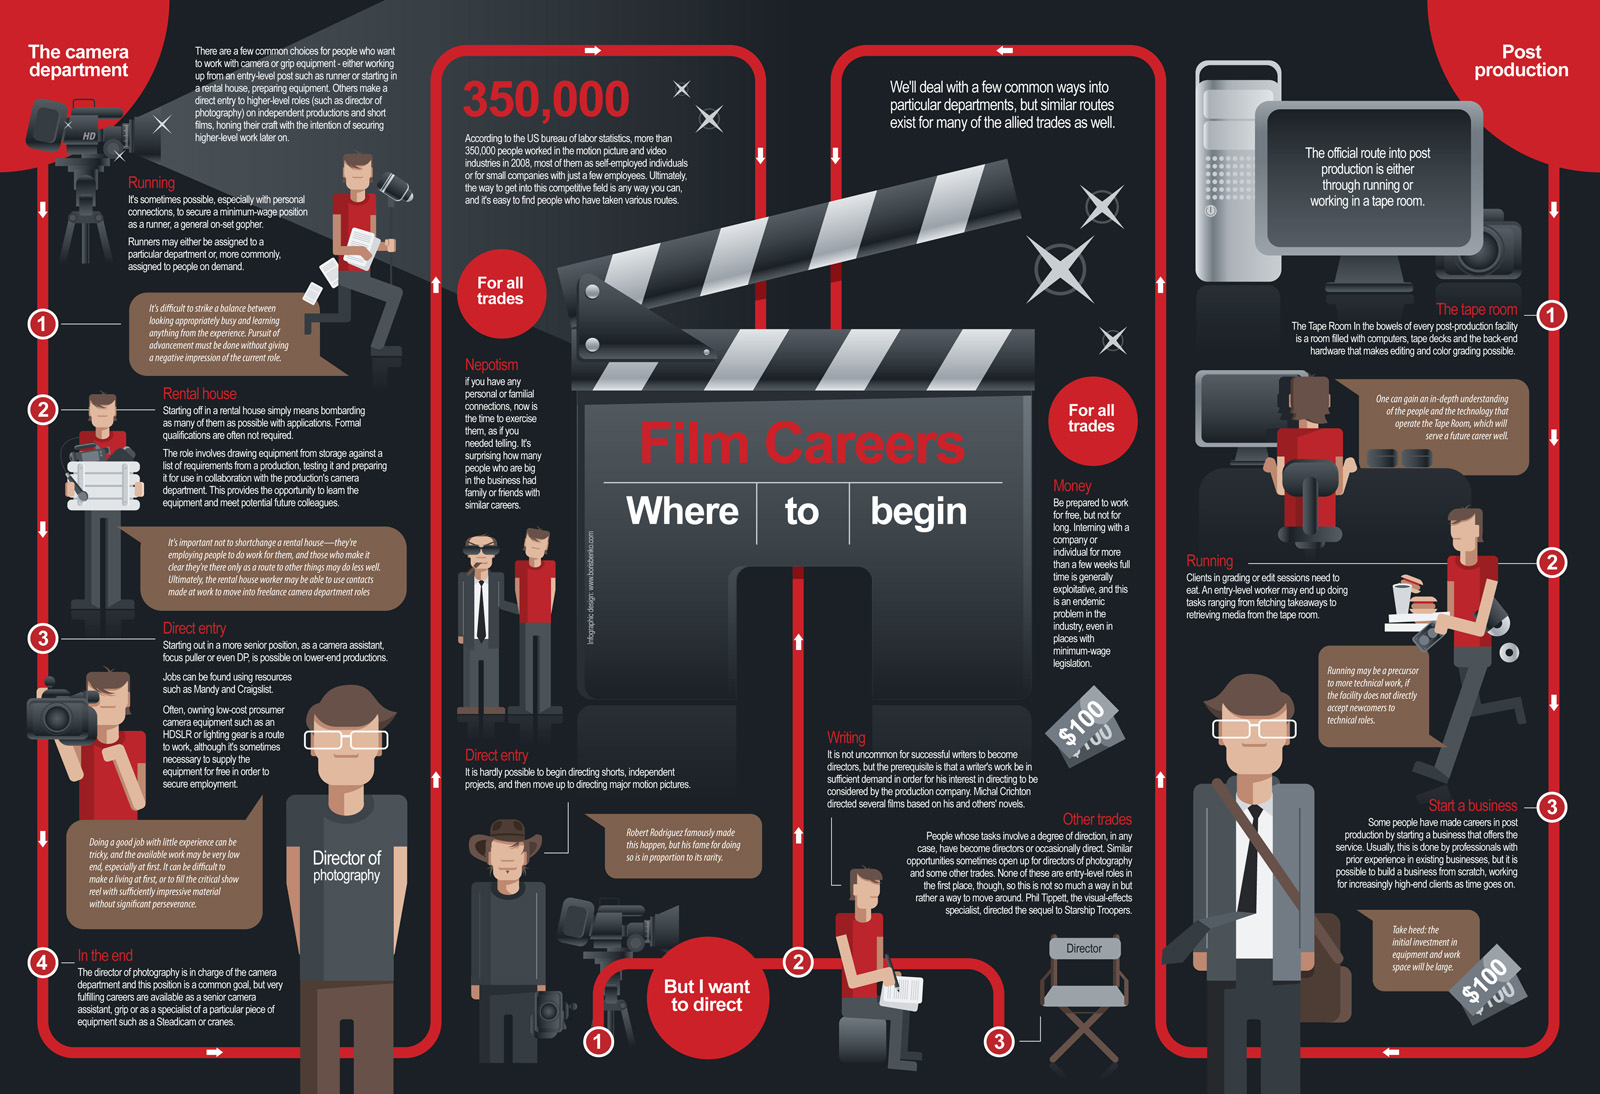 Where To Start Your Film Career